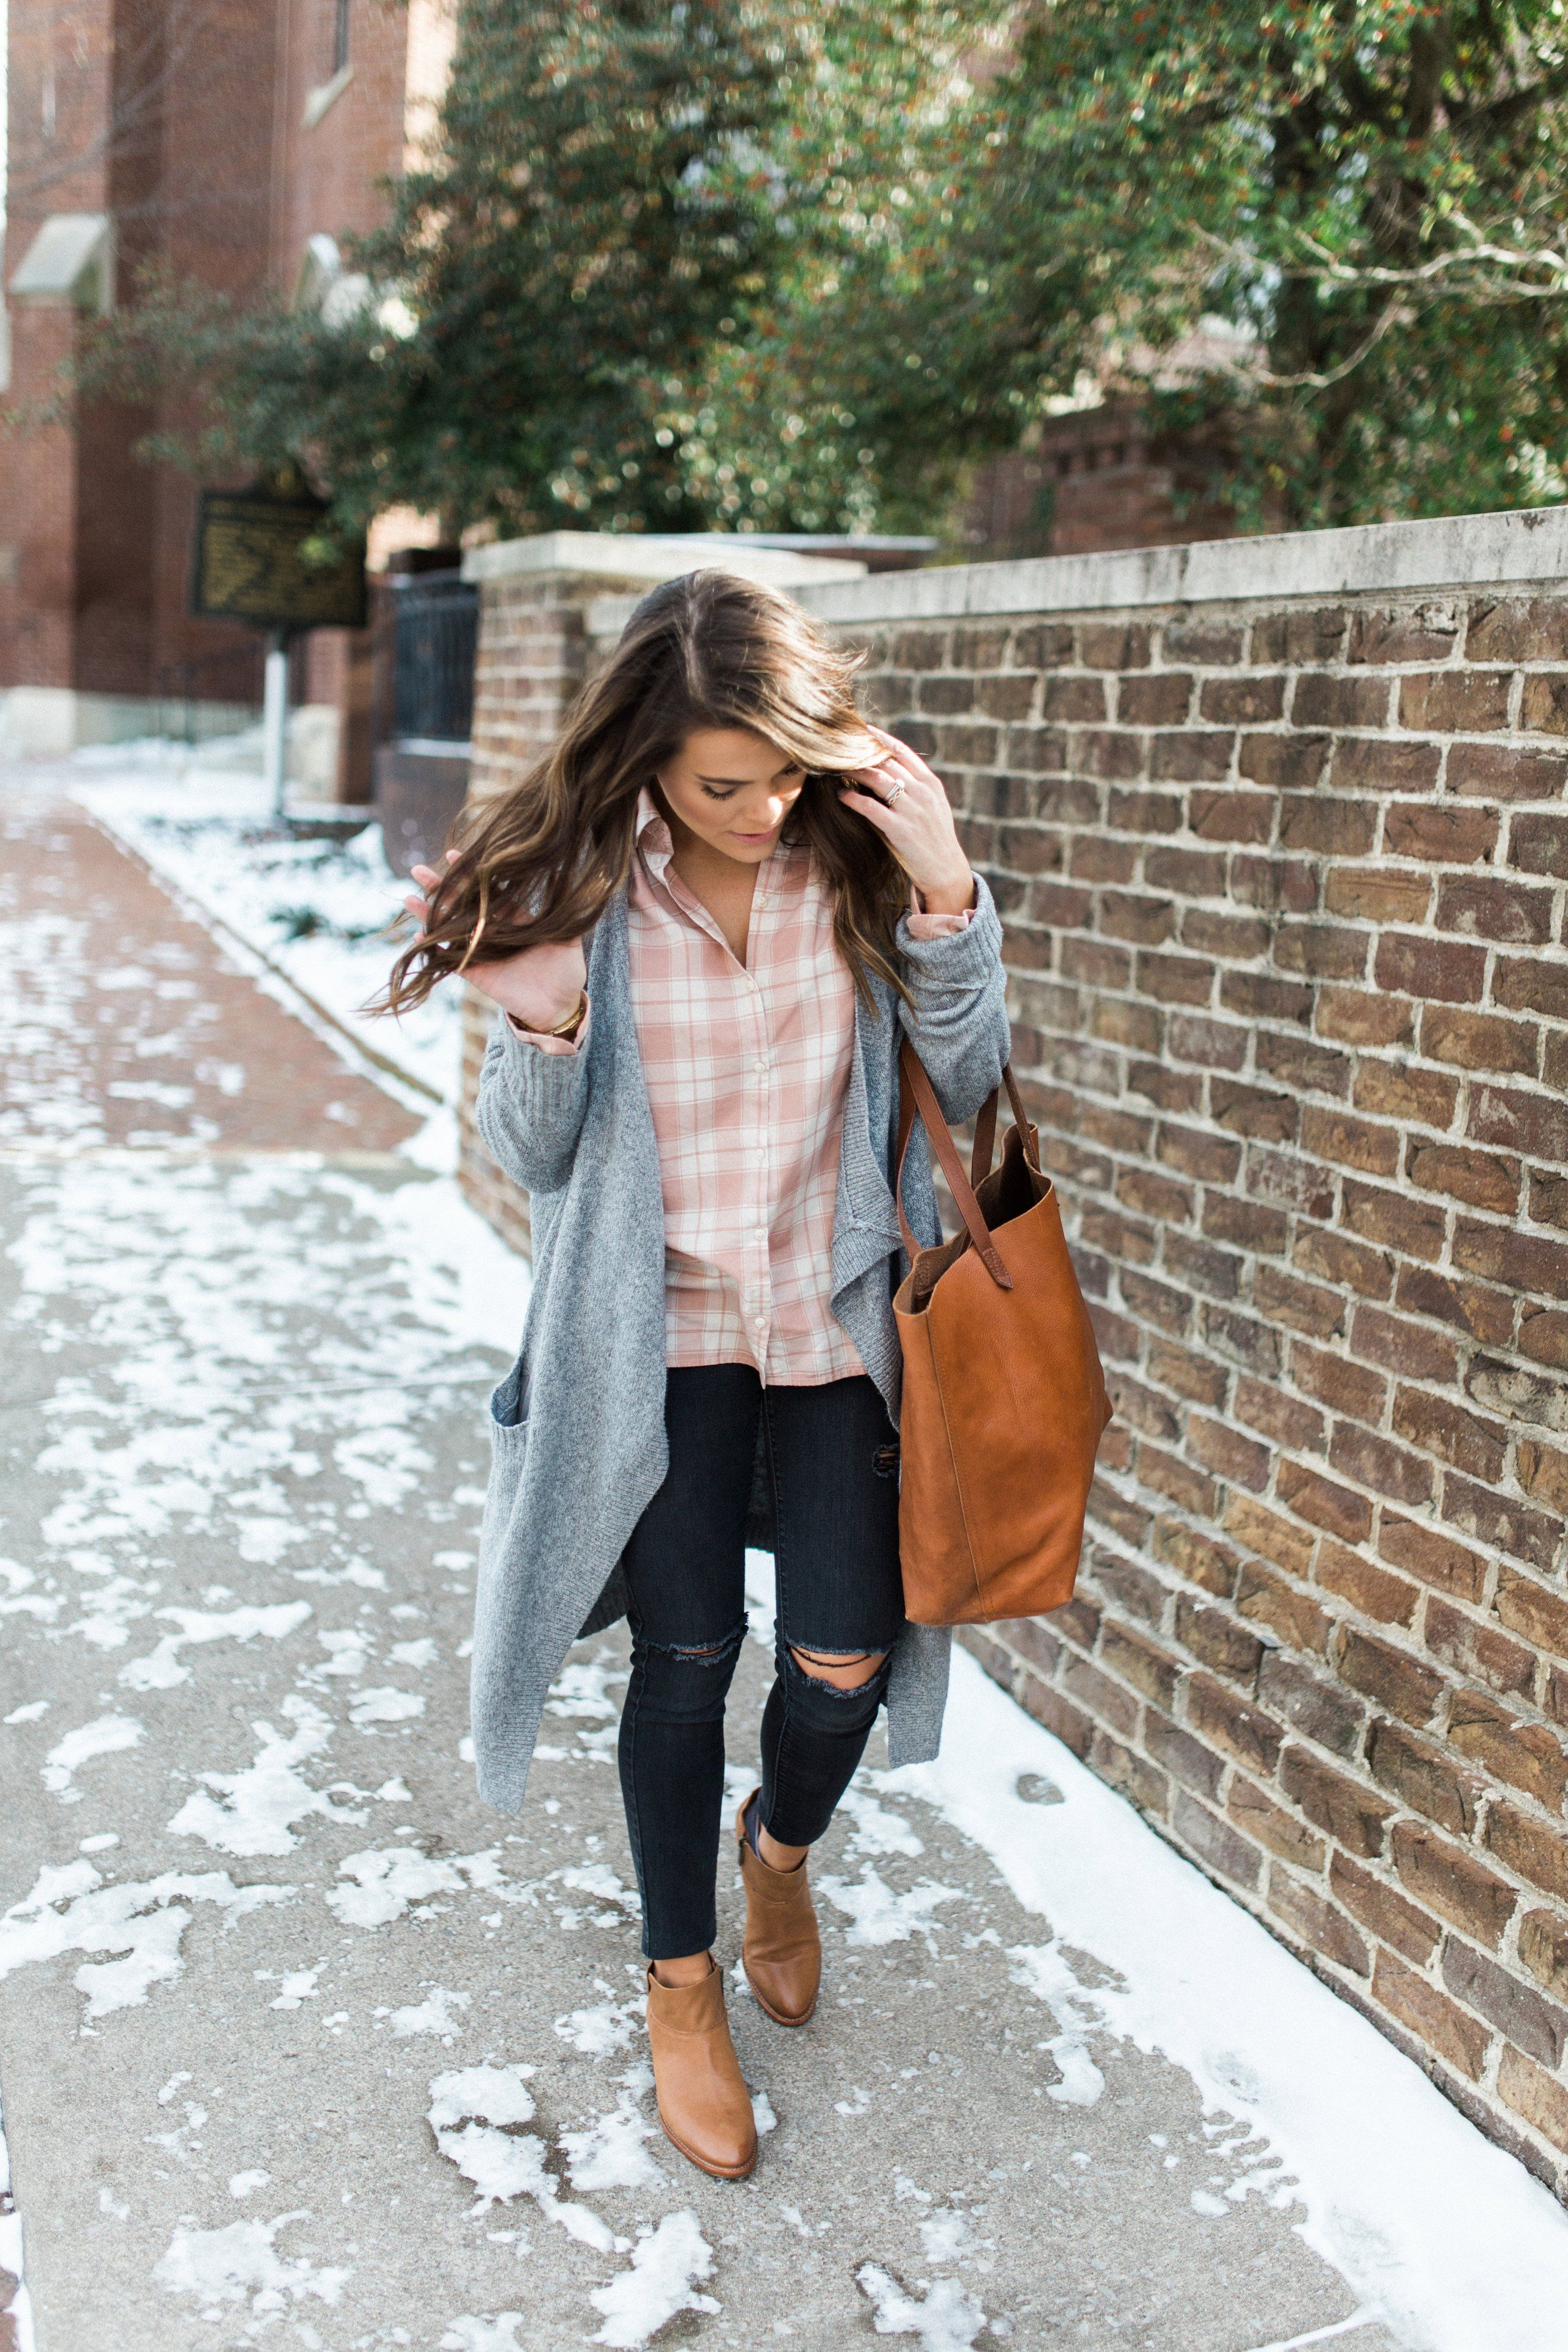 ba7227dbbe68 Winter Outfit Inspiration Ft. Madewell Pink Plaid Shirt